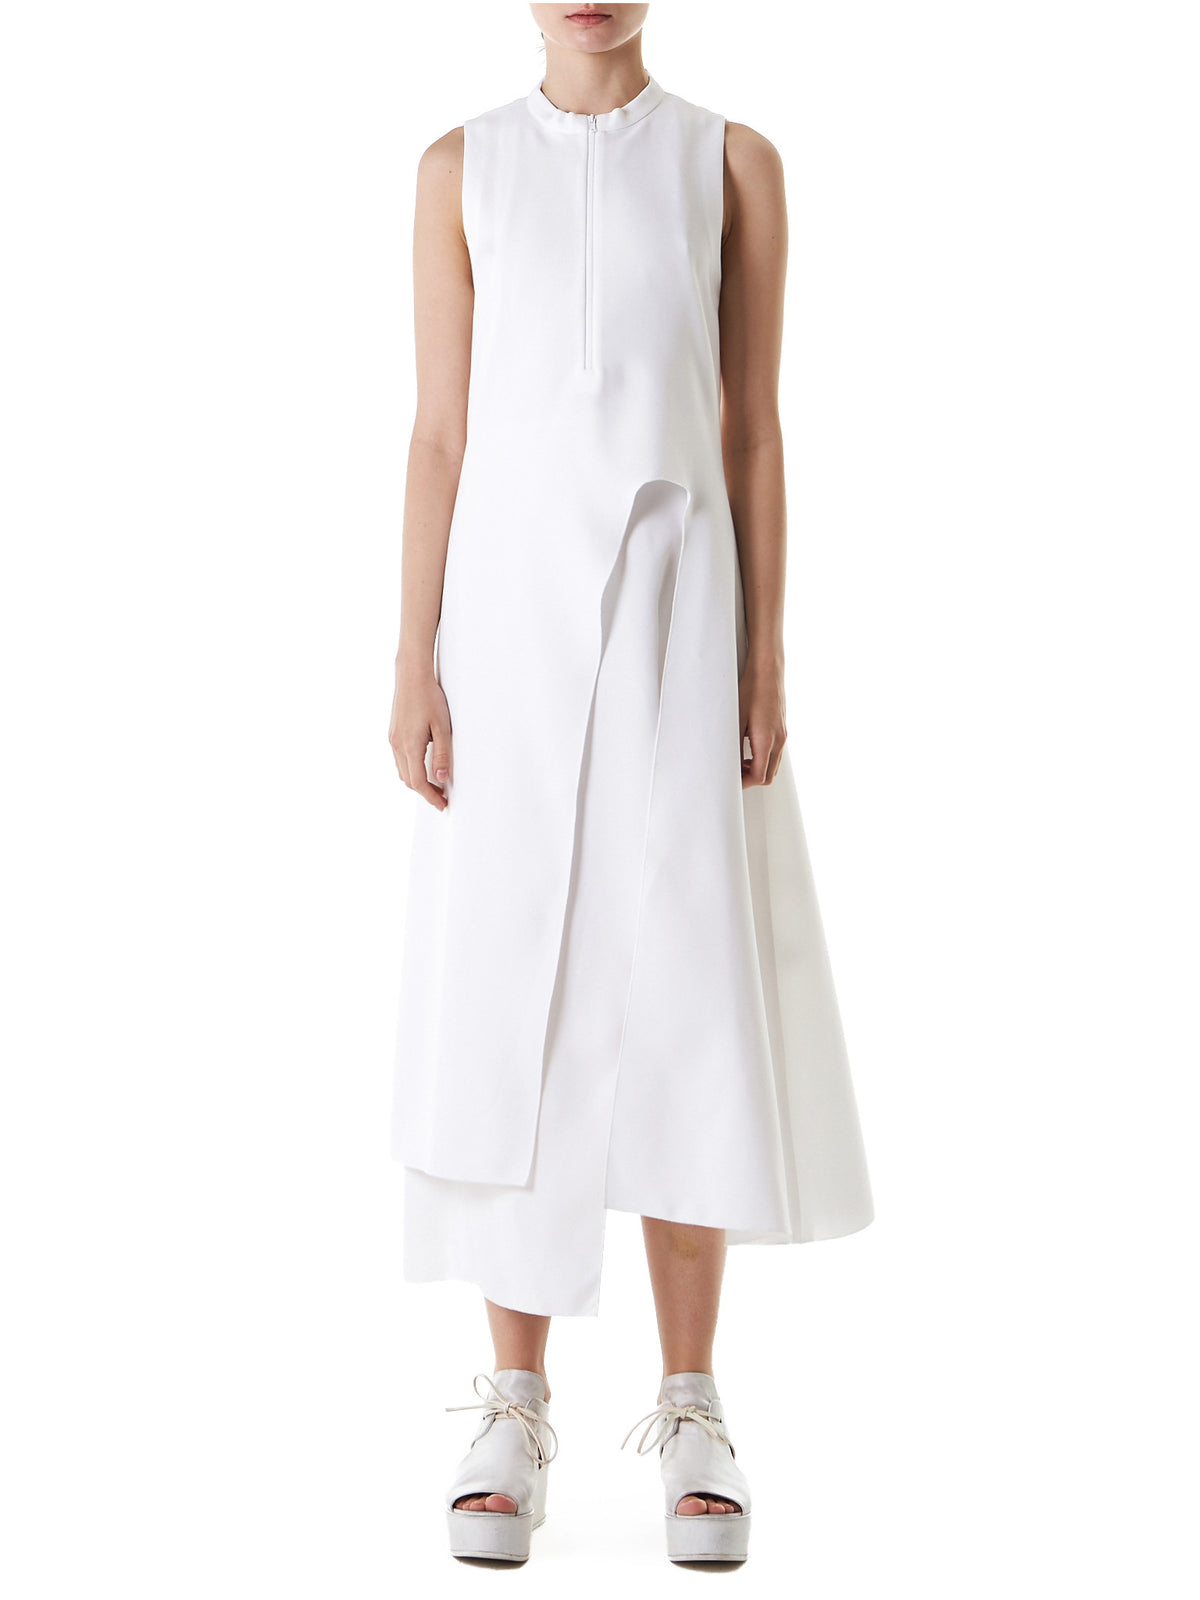 Structured Sleeveless Dress (11-1-WHITE) - H. Lorenzo